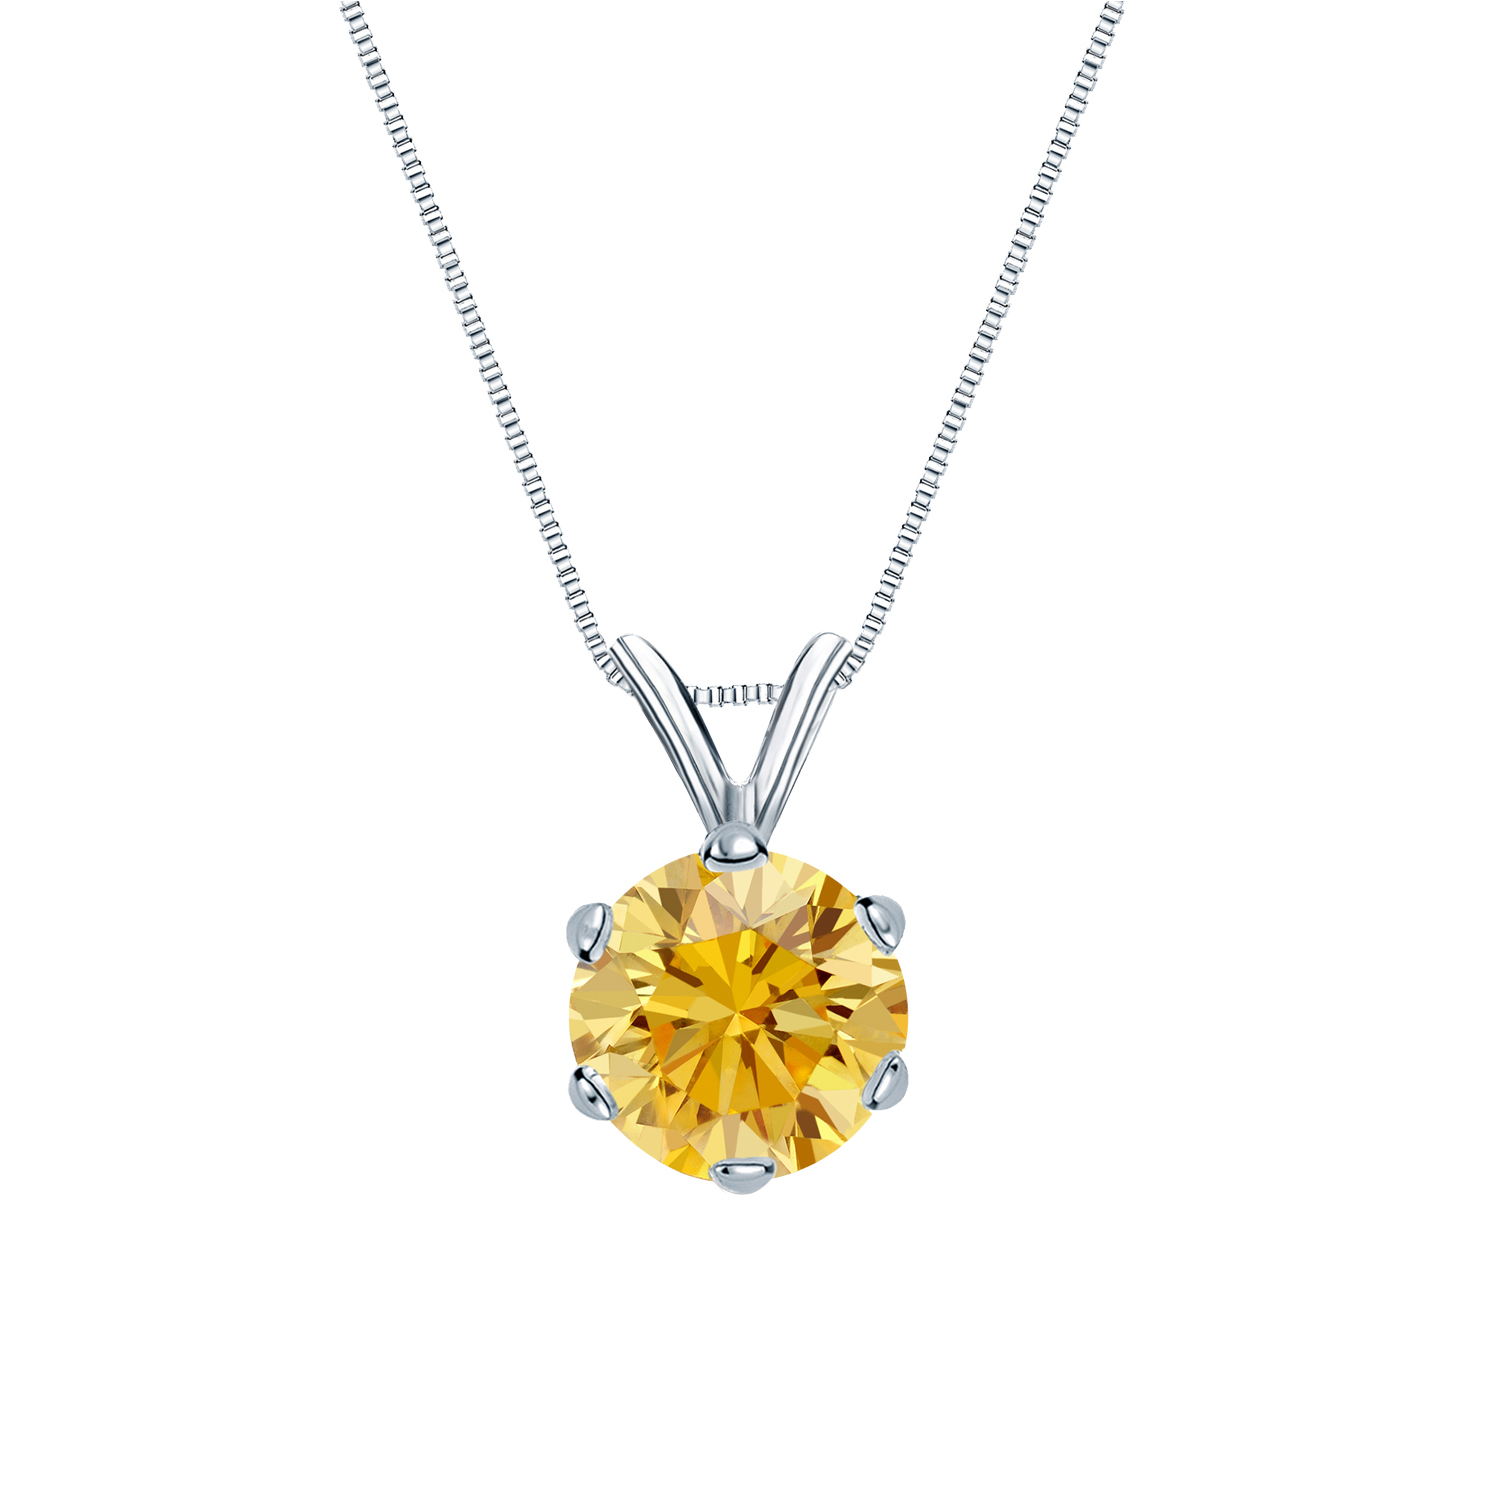 Certified 0.75 ct. tw. Round Yellow Diamond Solitaire Pendant in 18k White Gold 6-Prong (Yellow, SI1-SI2)